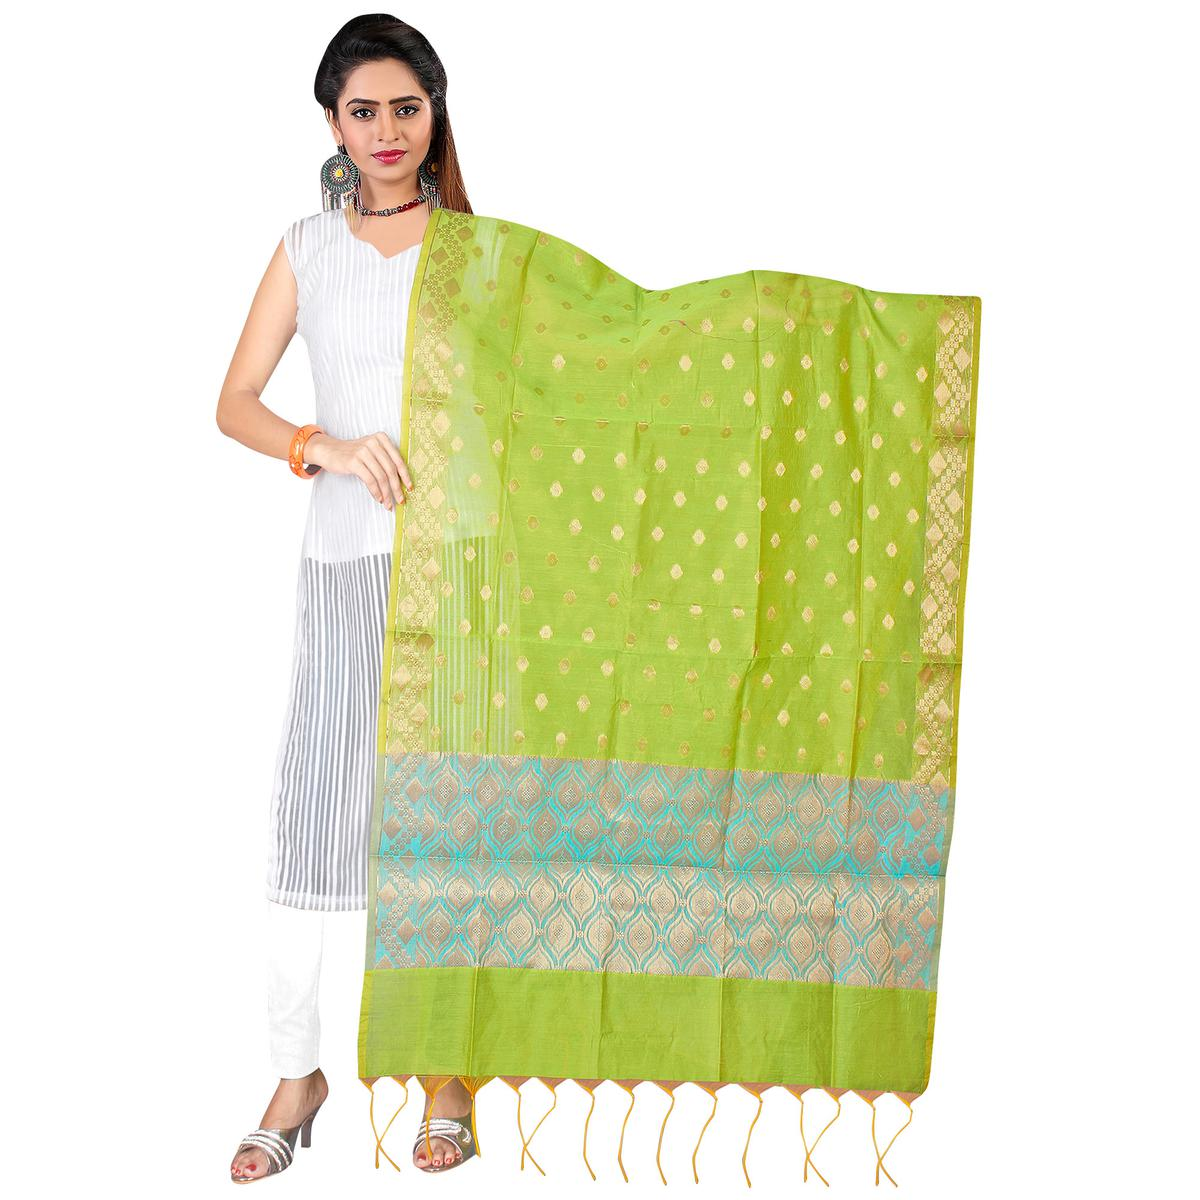 Refreshing Green Colored Banarasi Silk Dupatta